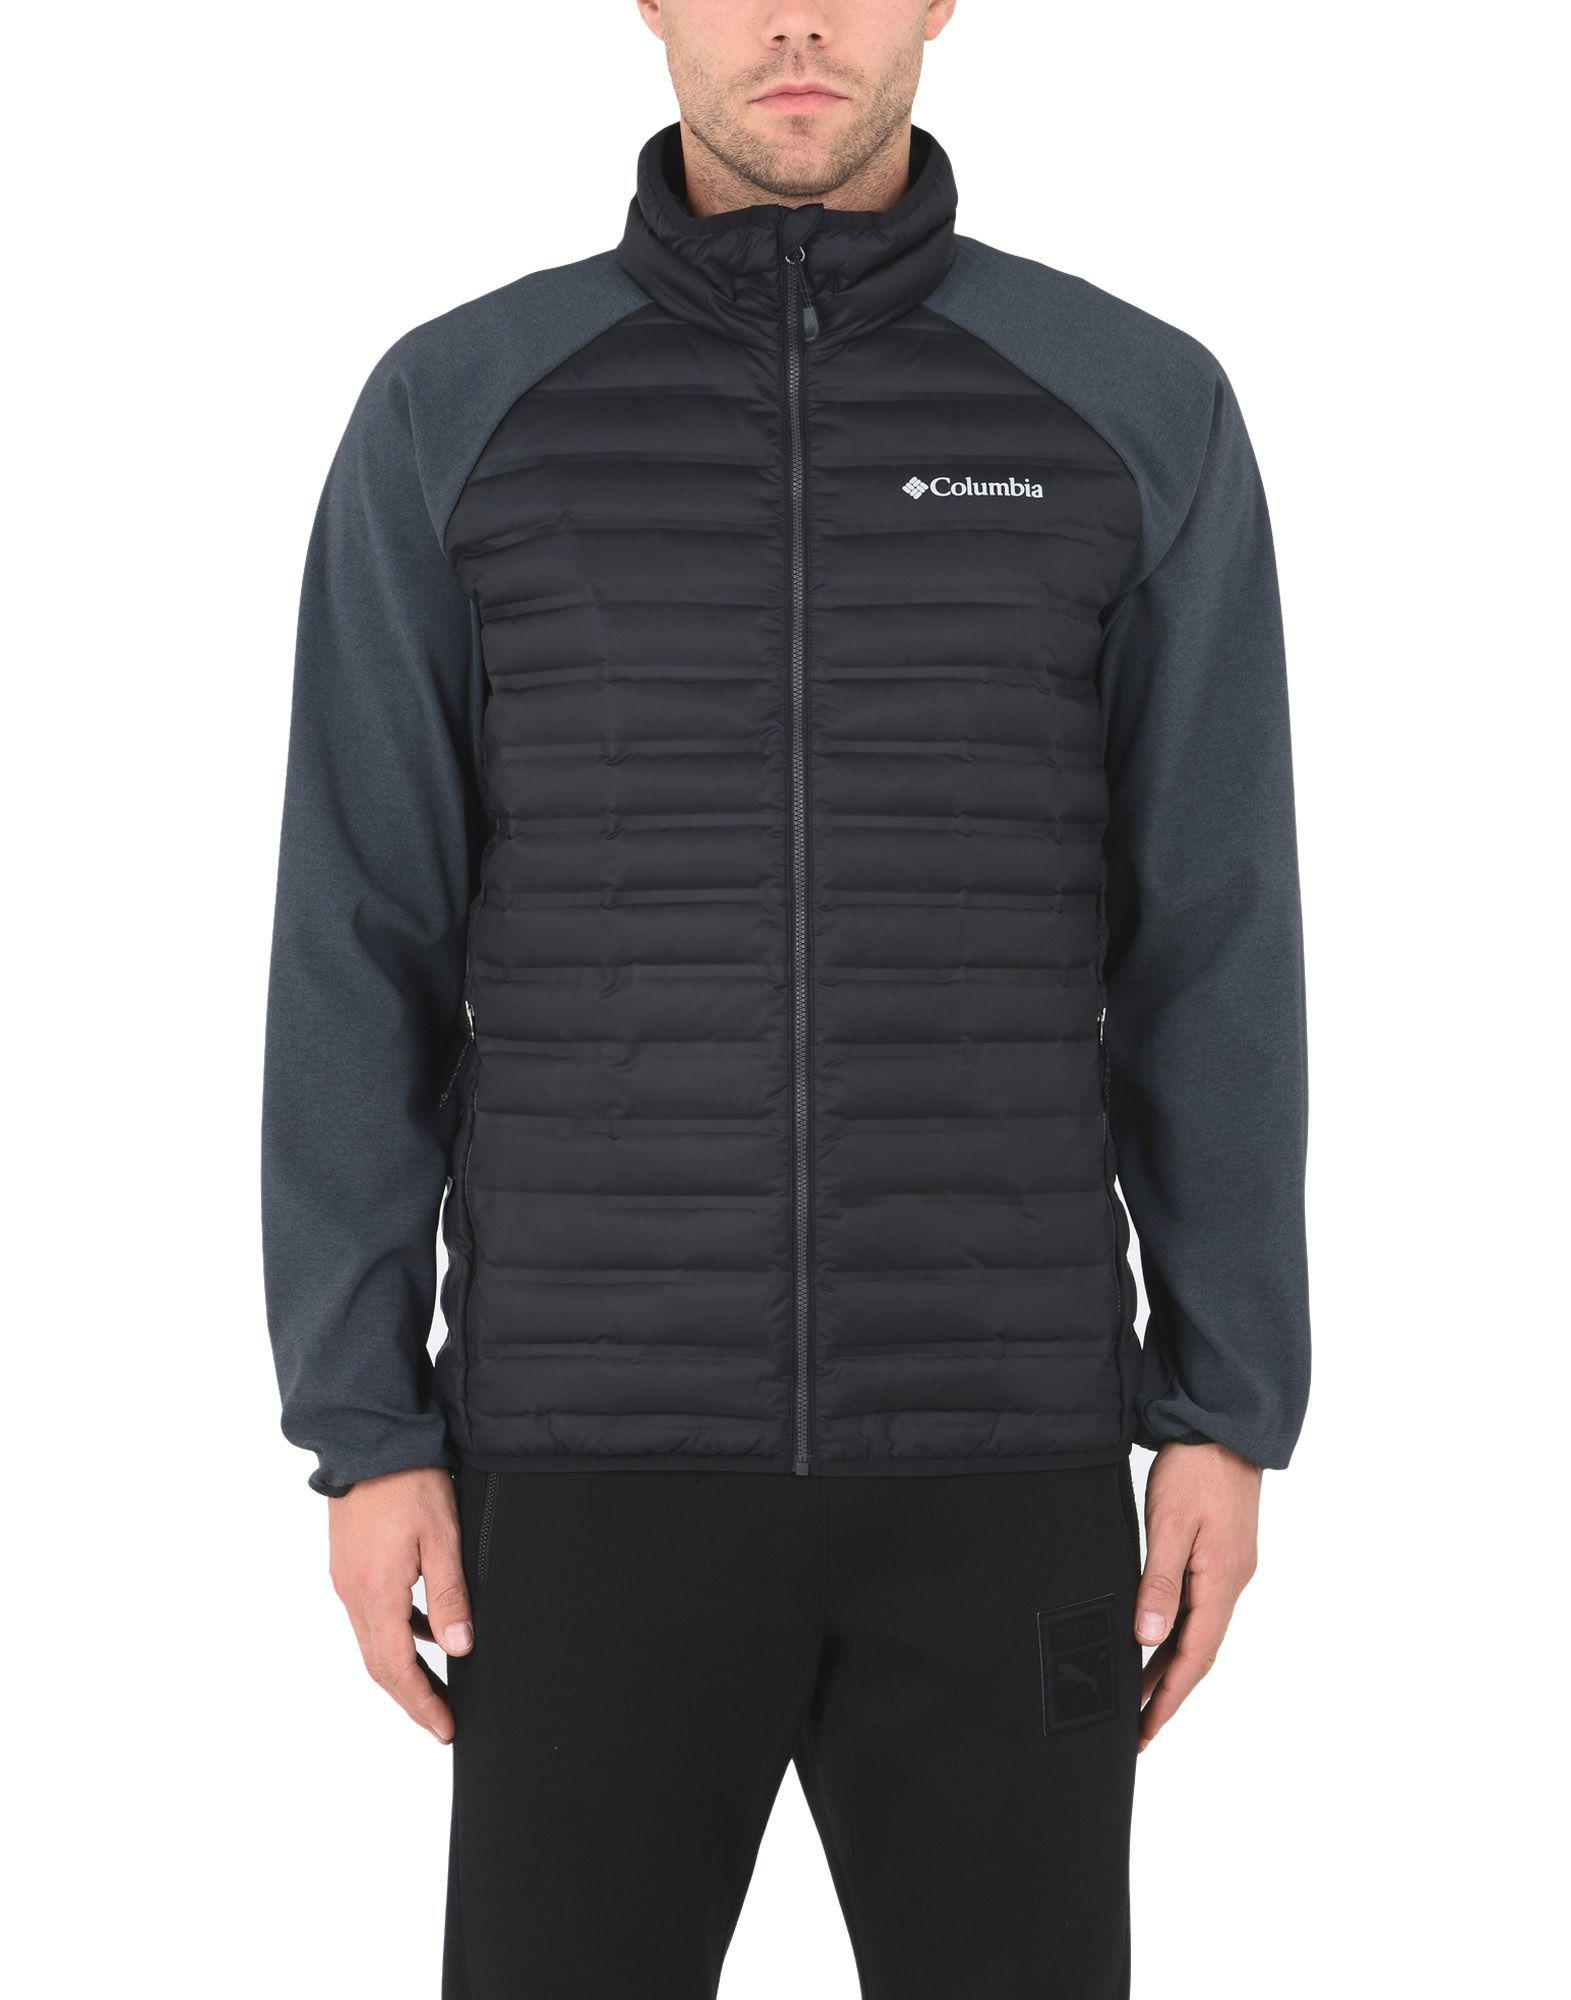 Columbia Synthetic Down Jacket in Black for Men